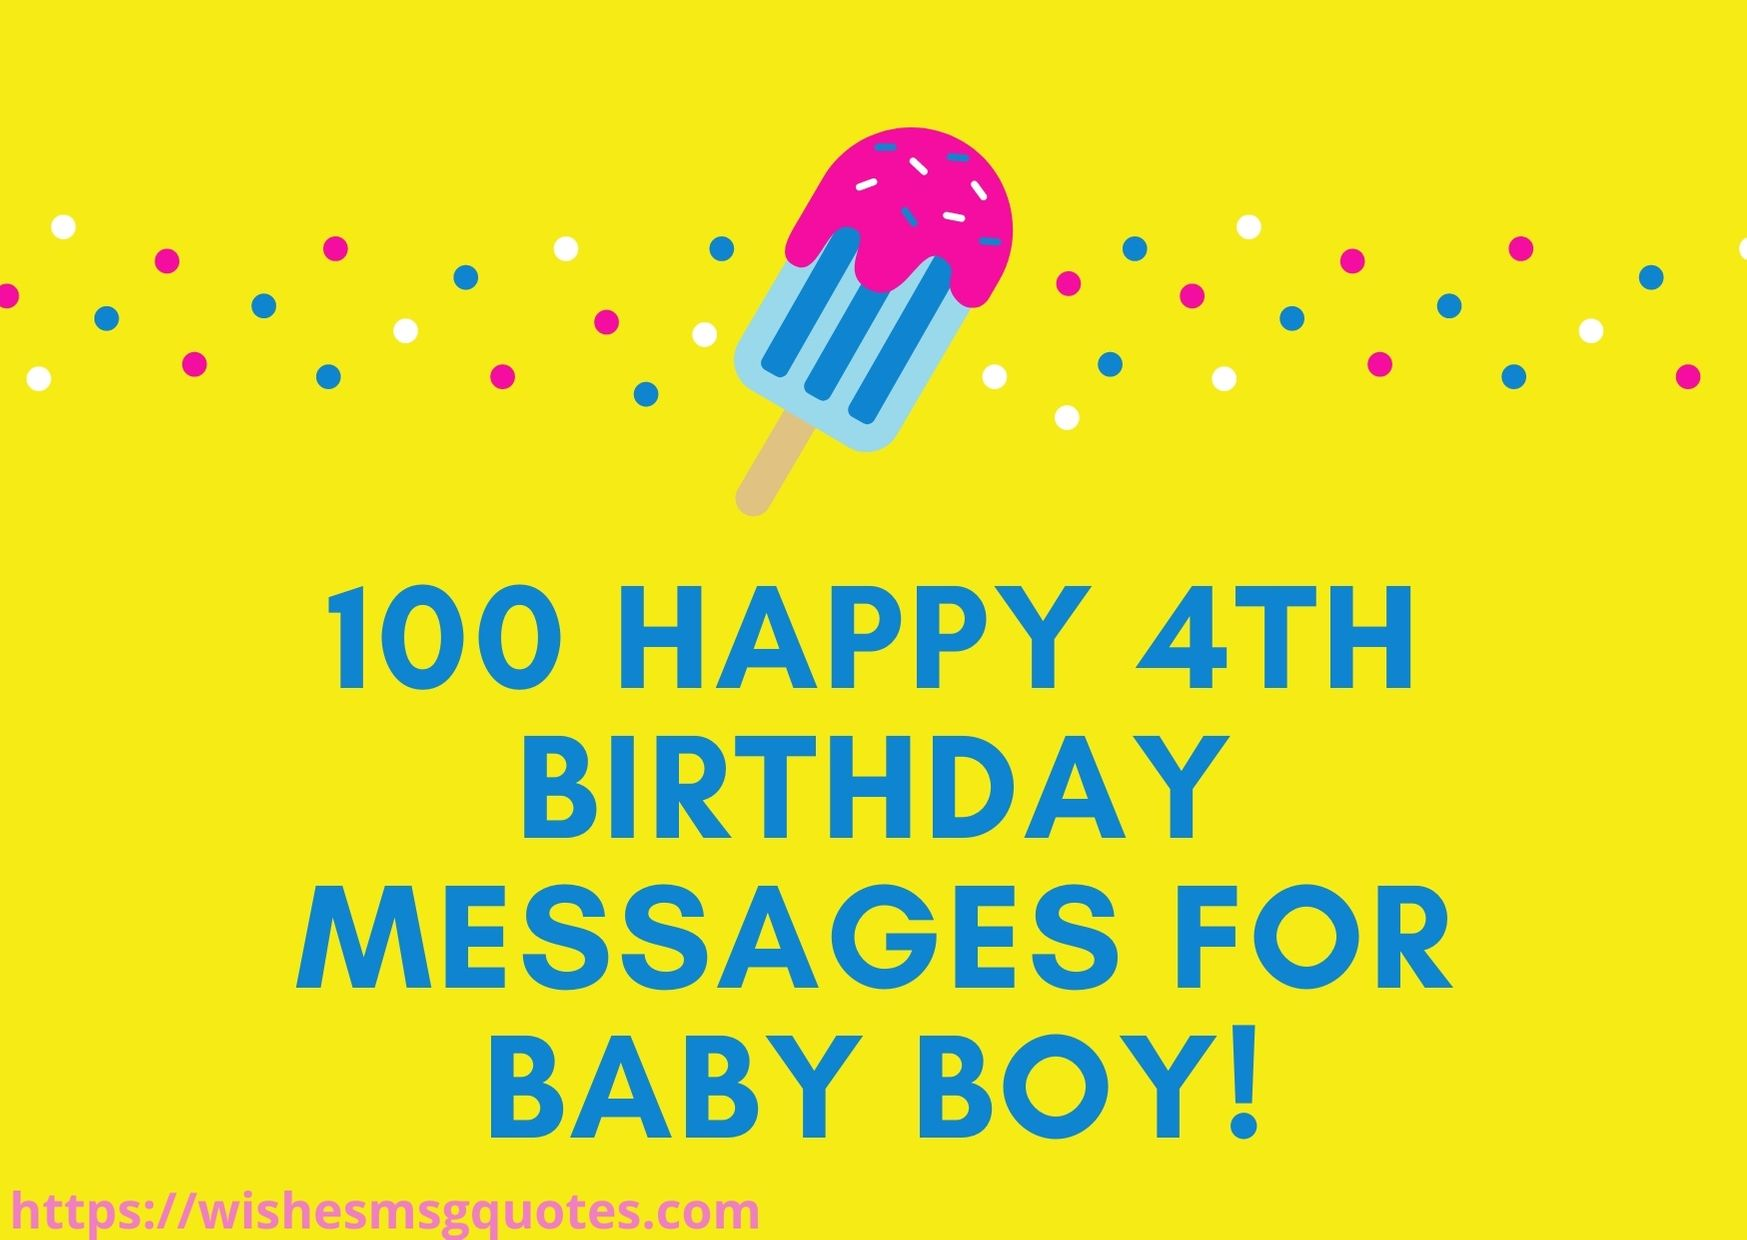 100 Happy 4th Birthday Messages For Baby Boy